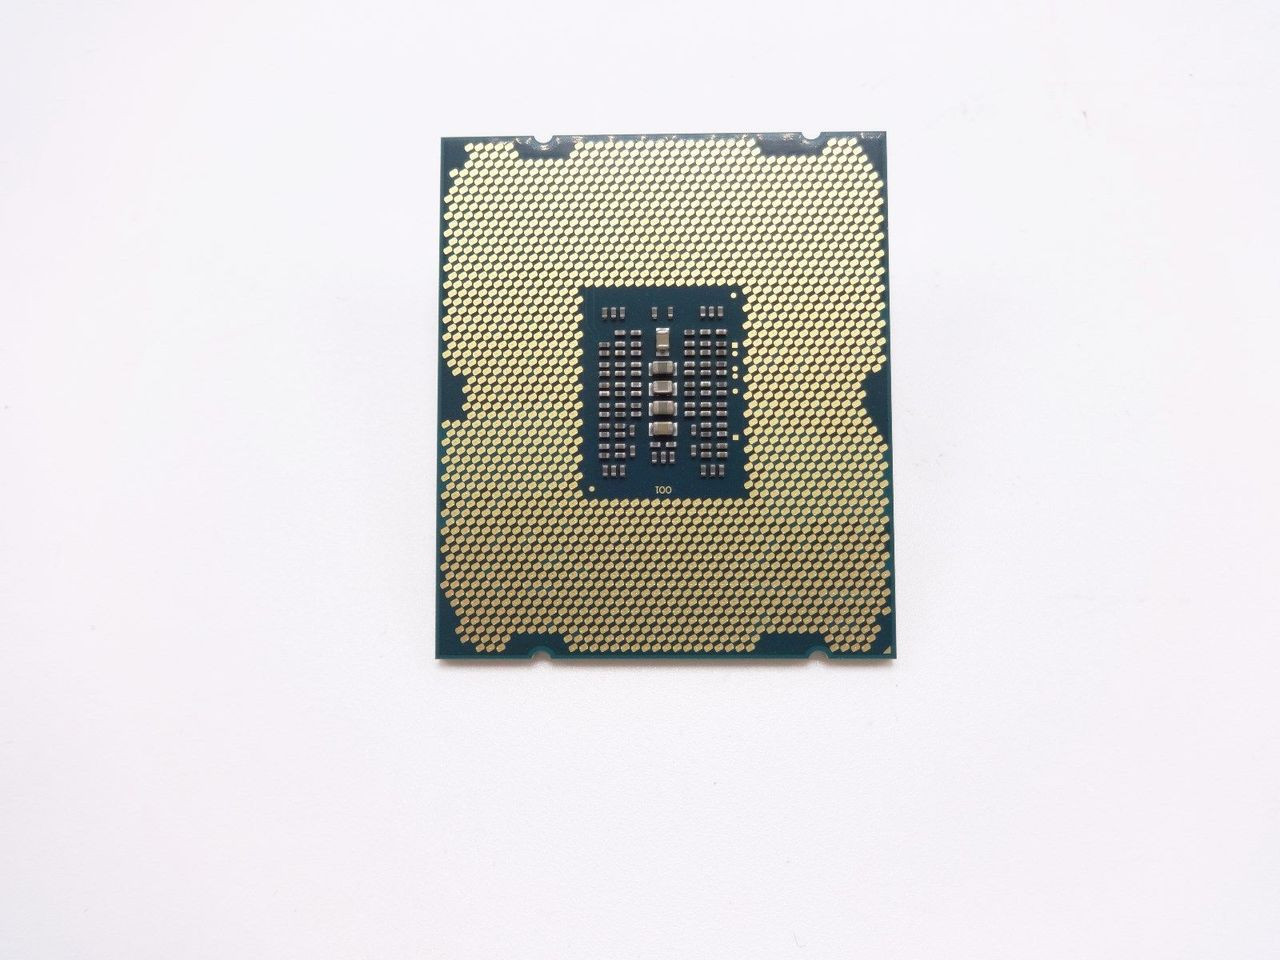 Intel Xeon E5-1620 v2 Quad-Core Processor 3.7GHz 0GT-s 10MB LGA 2011 CPU44; OEM